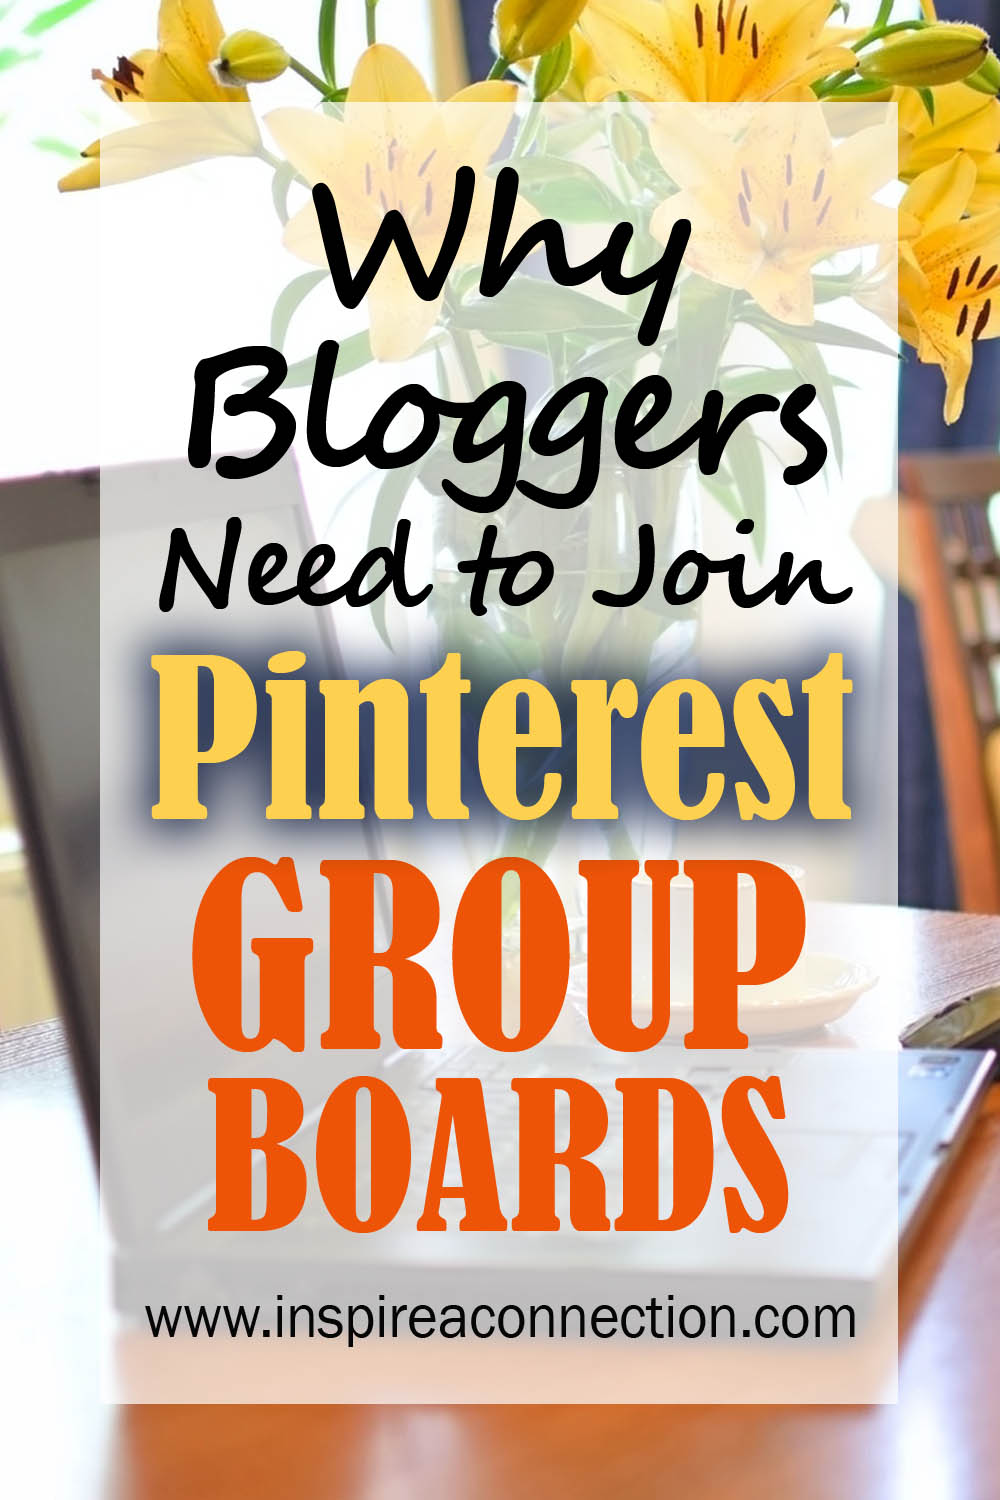 Why Bloggers Need to Join Pinterest Group Boards - If you're not pinning to group boards, you're missing out on a huge audience that goes well beyond your own followers. So let's start with the basics.... #pinterestgroupboards #pinteresttips #pintereststrategies #tailwind